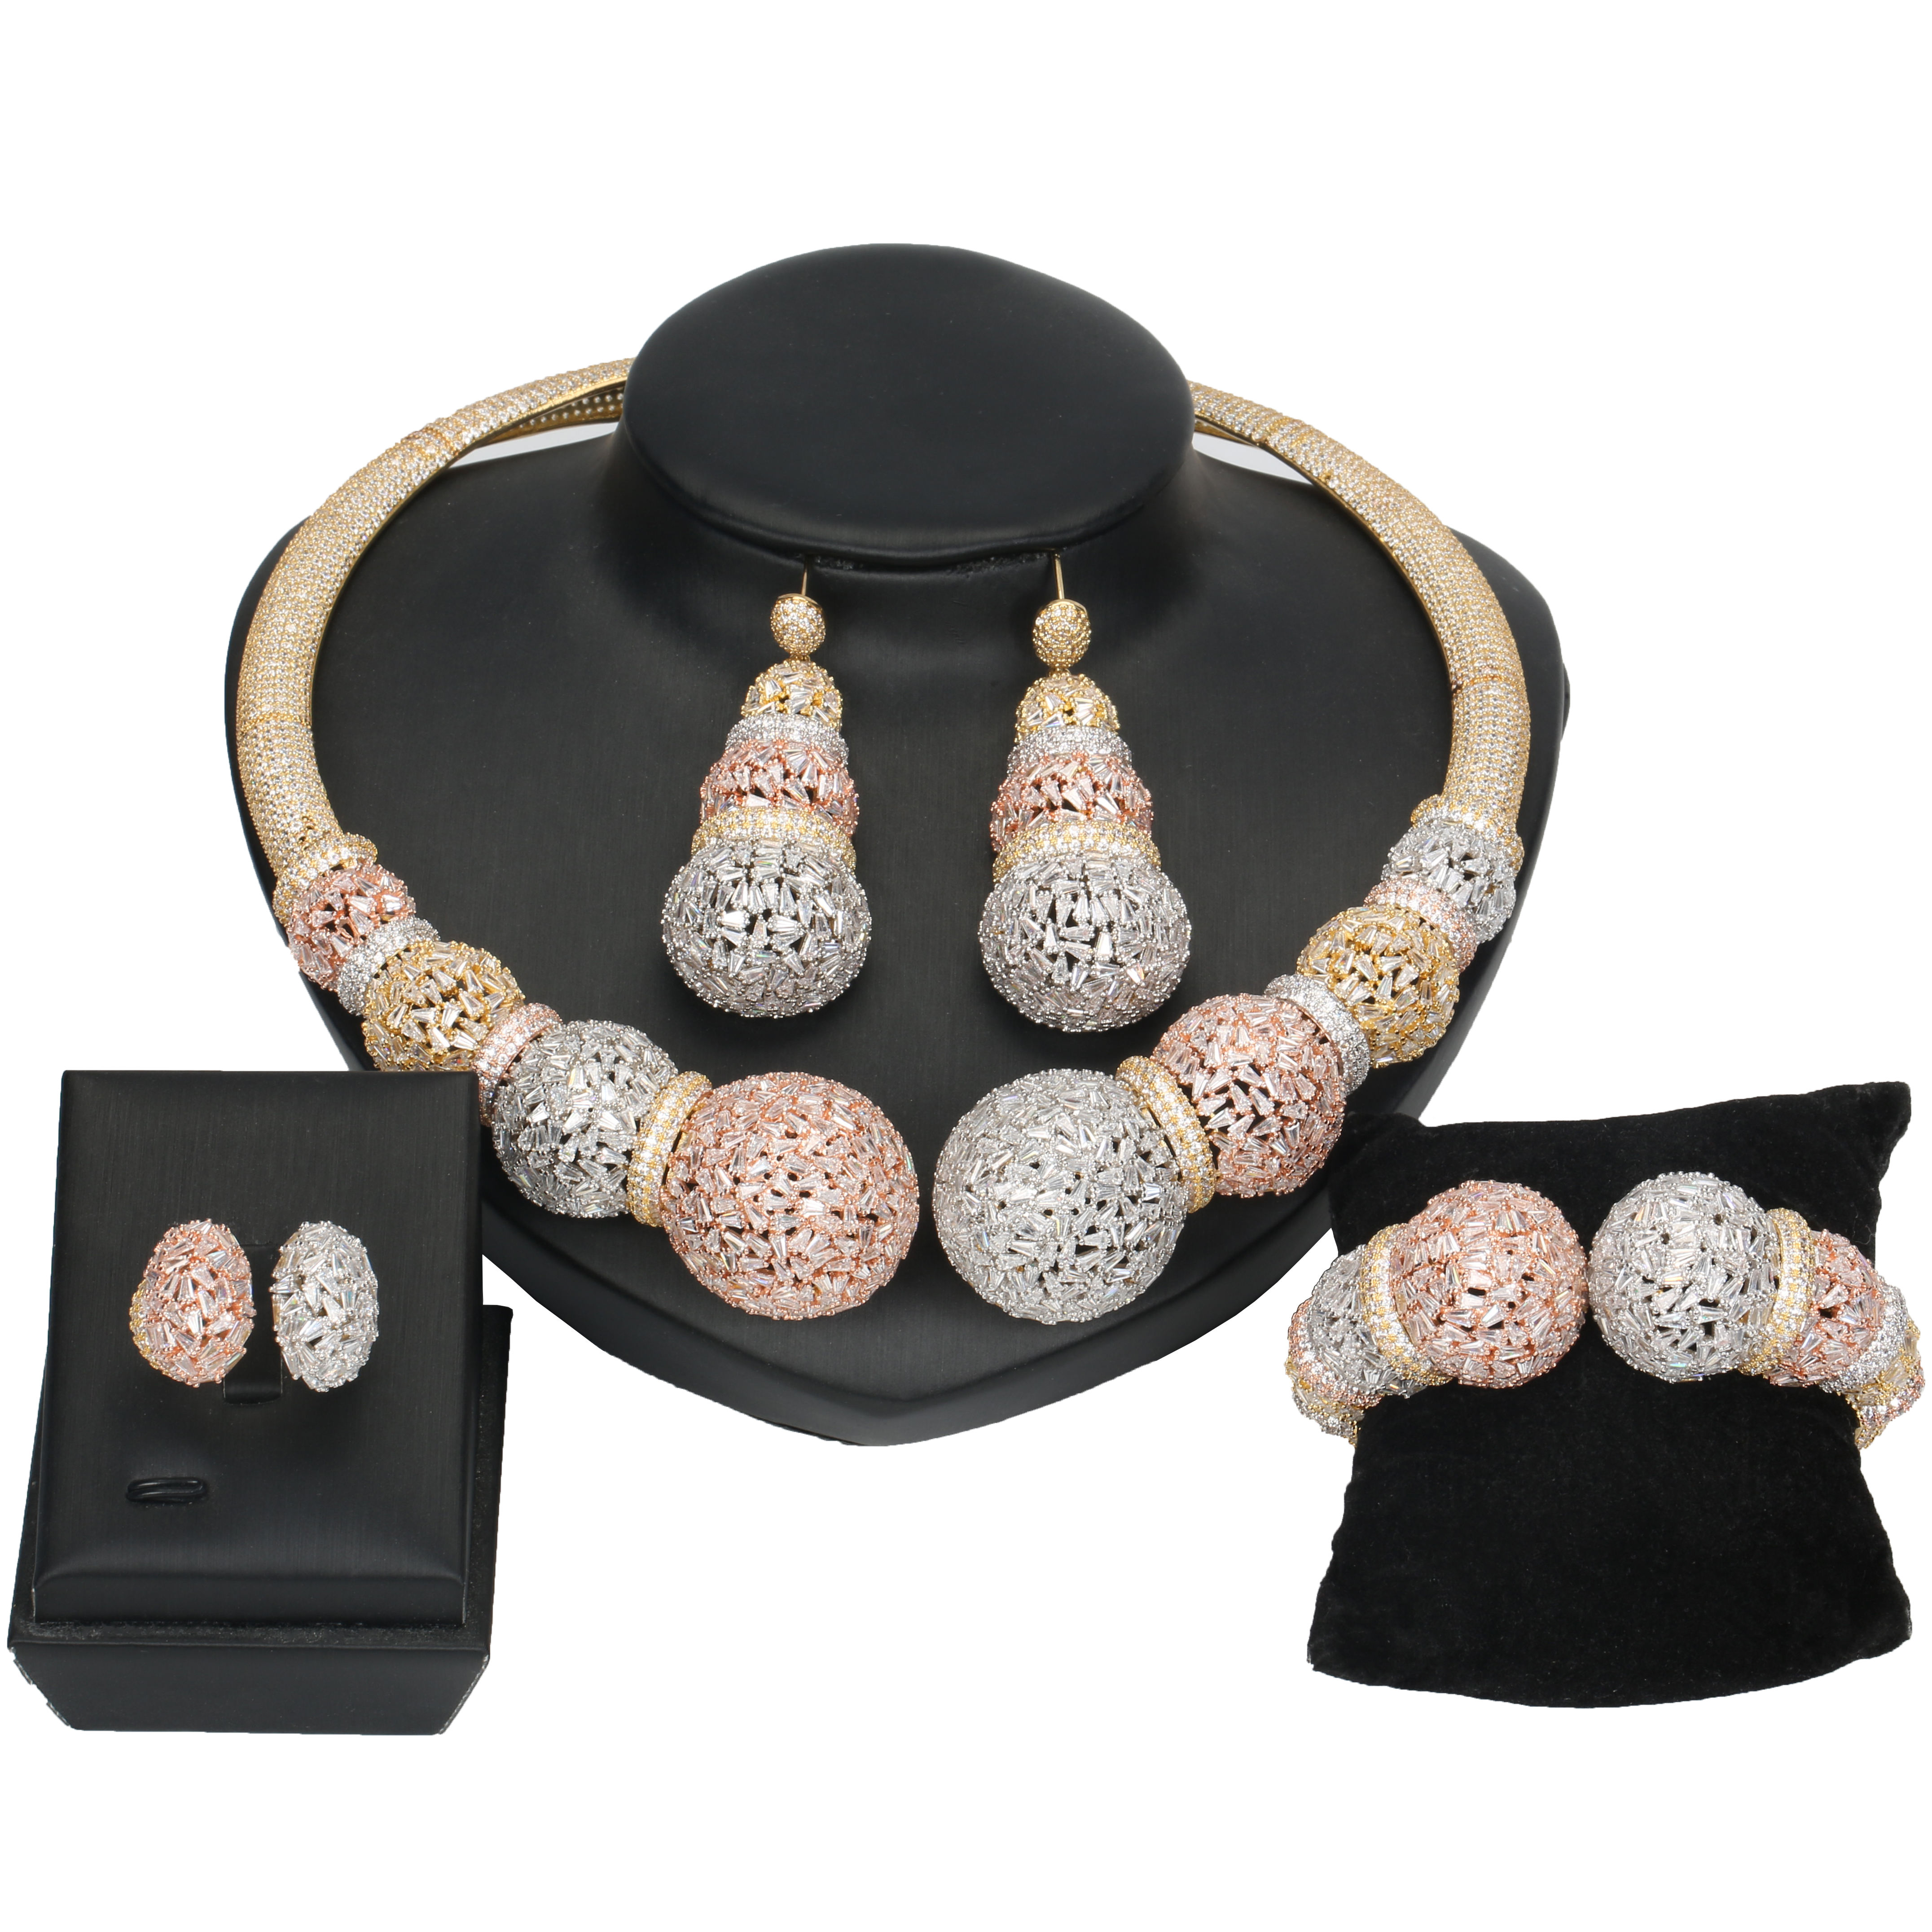 DV XIAOSHI China manufacture AAA cubic zirconia bridal jewelry sets popular designs